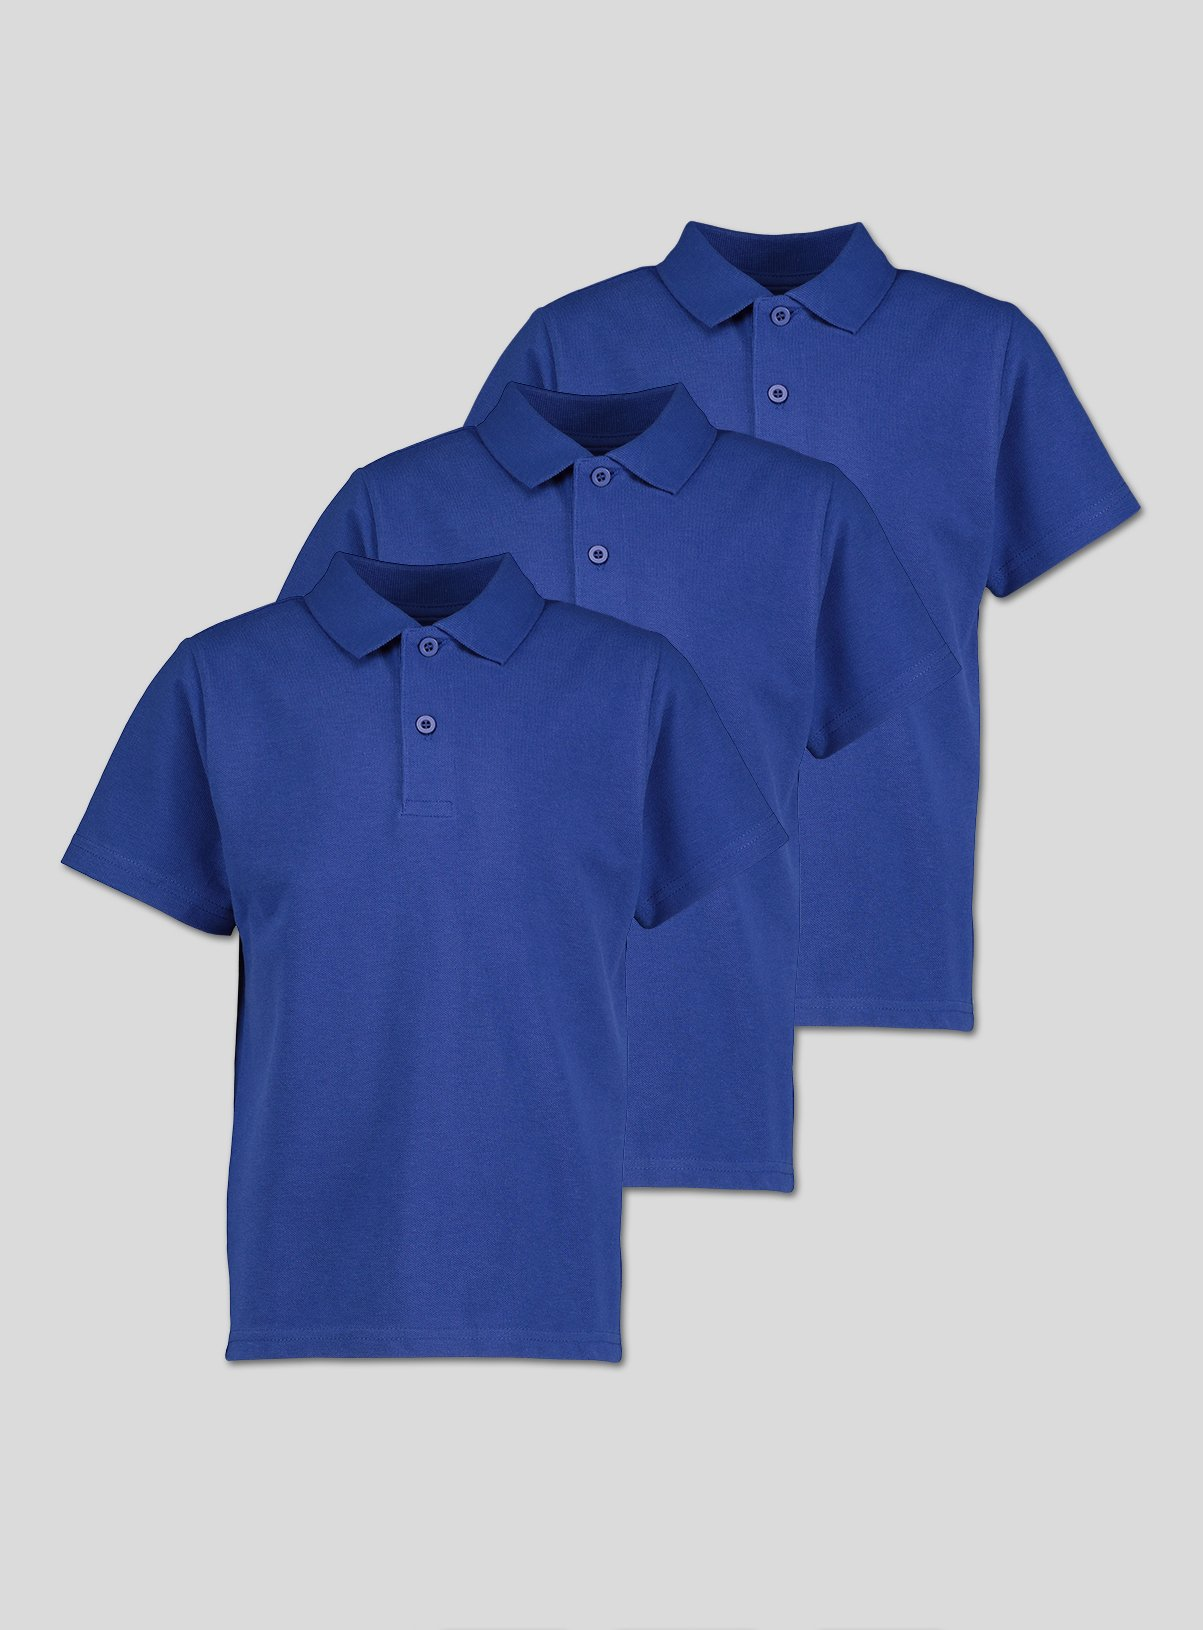 5-6 Royal Blue Boys T Shirt Age Tractor Ted Polo Shirt